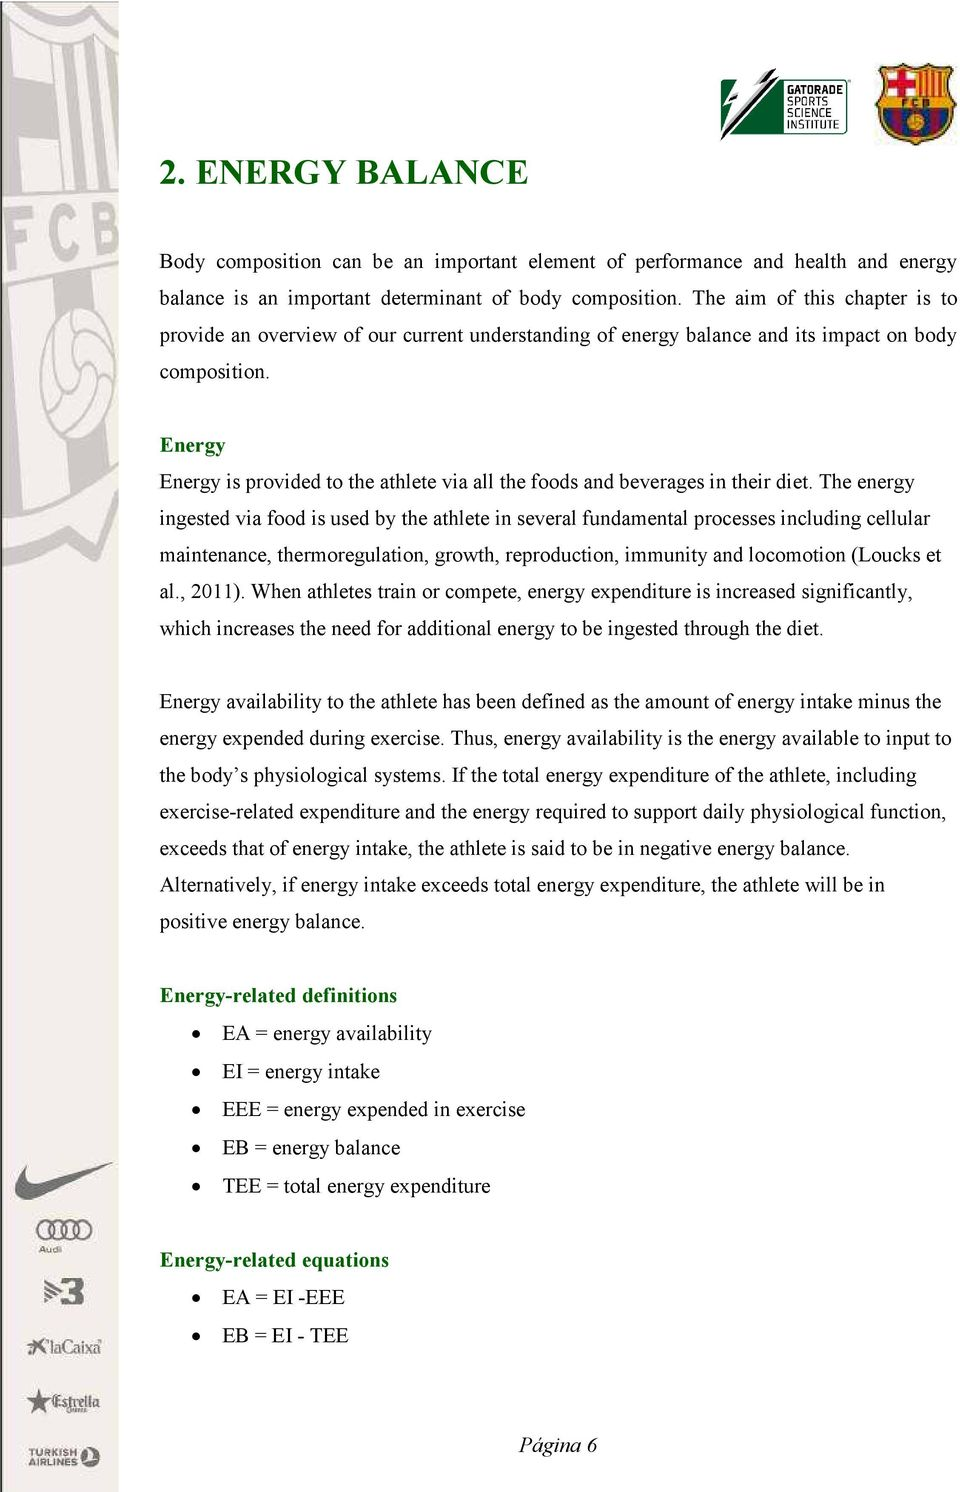 Energy Energy is provided to the athlete via all the foods and beverages in their diet.